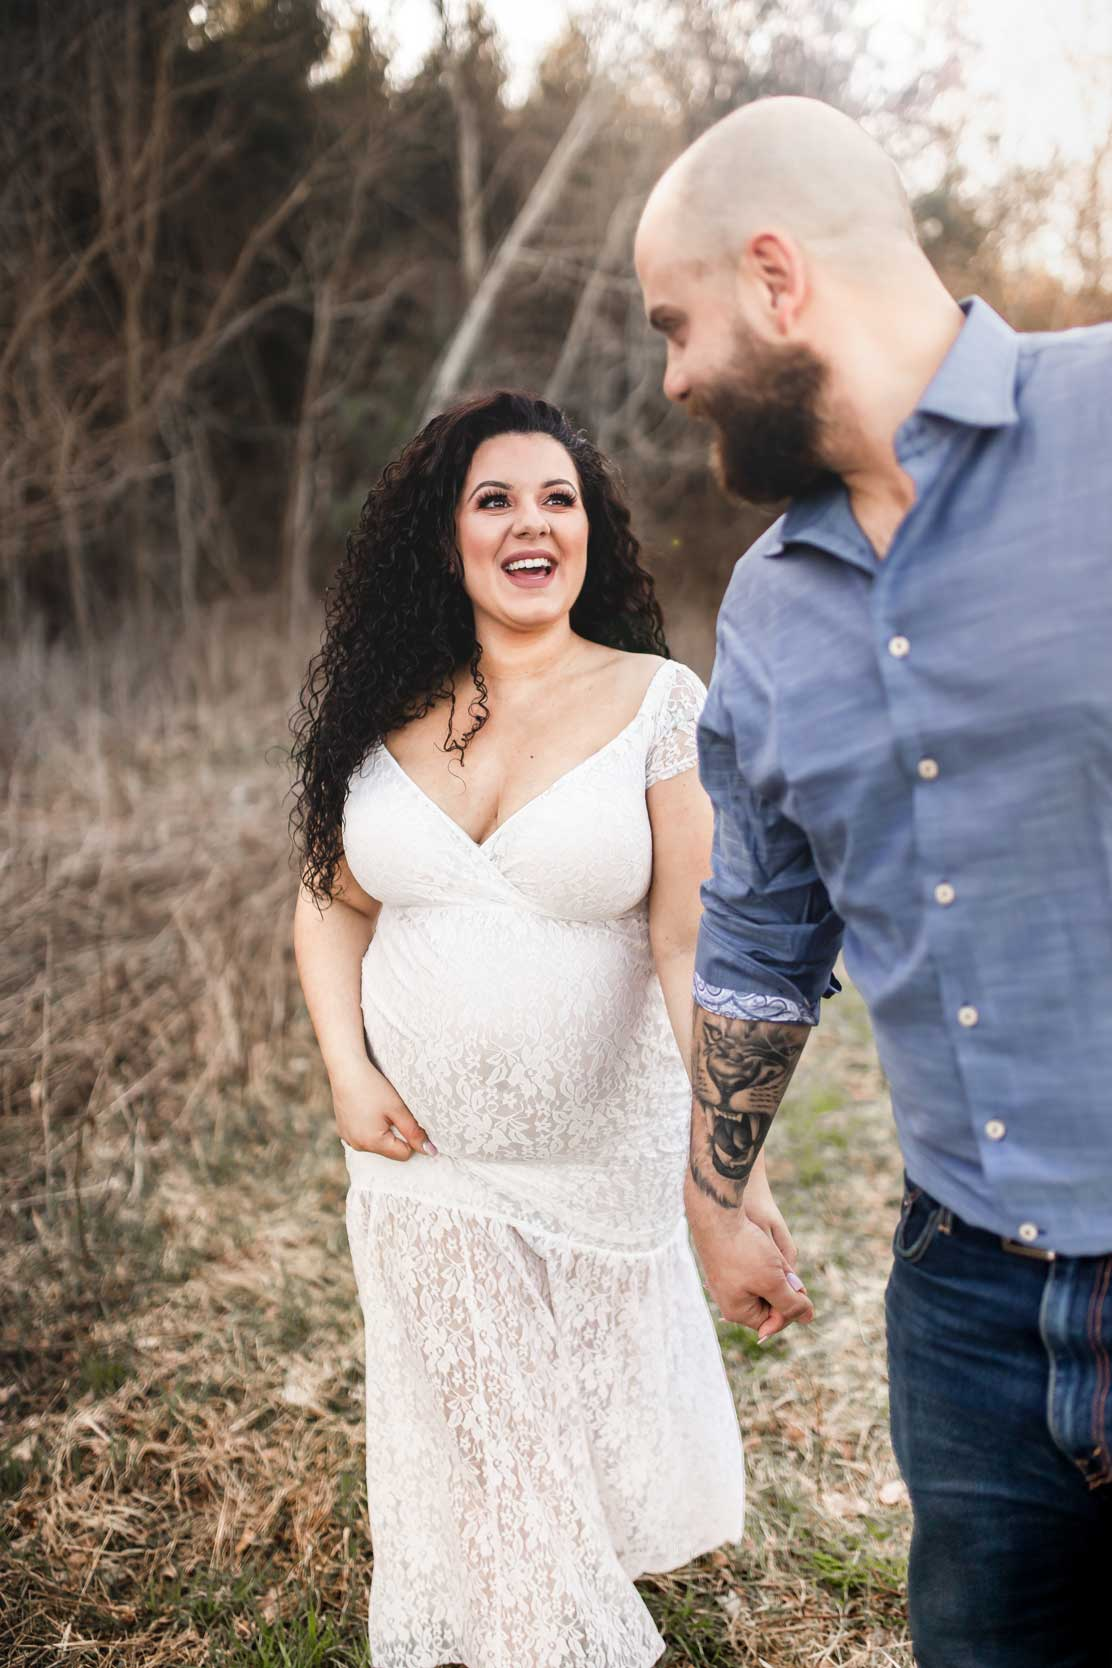 Amy-D-Photography--Maternity-Session--Outdoor-Maternity-Photo--Maternity-Poses--Maternity-Couple-Ideas--Spring-Maternity-Session--Maternity-Photography-98.jpg